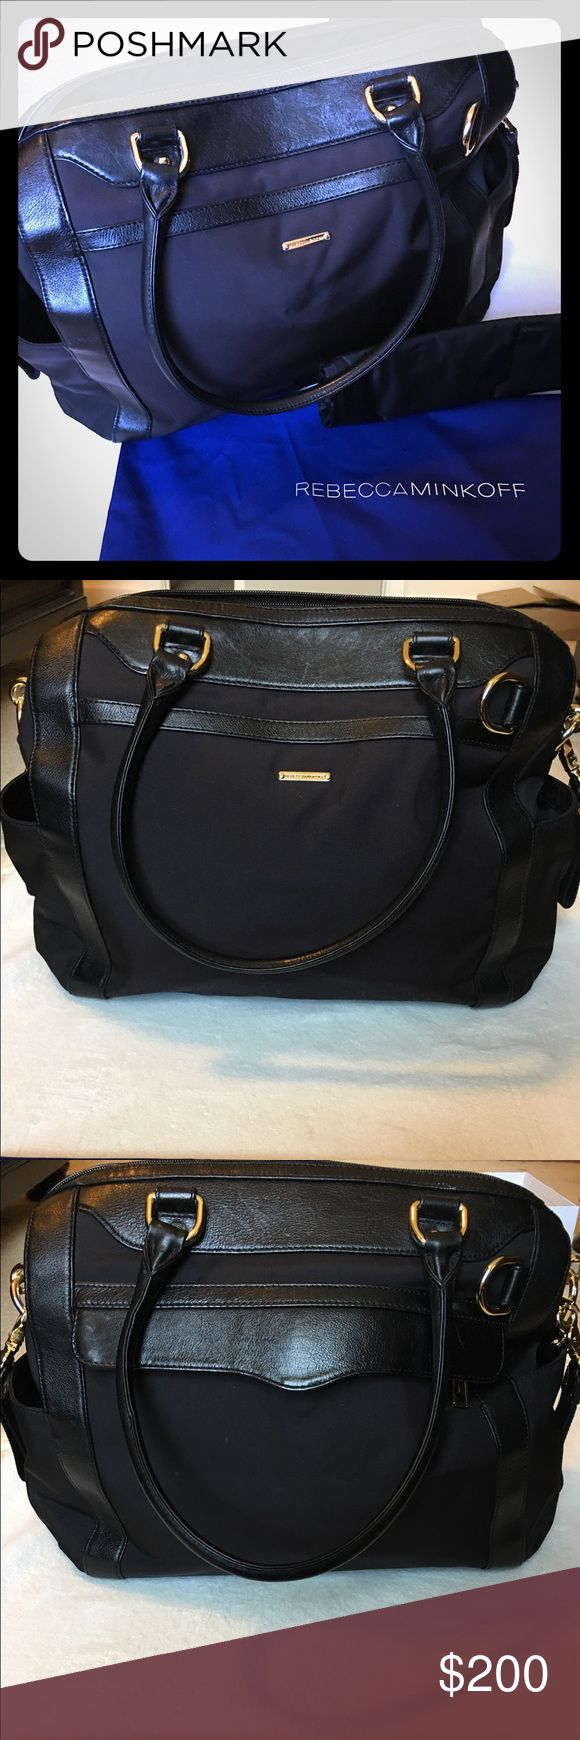 Rebecca Minkoff Knocked Up Baby bag Nylon diaper bag with genuine leather trim.  Includes gold hardware, stroller strap, changing pad, and bag cover.  Interior zipper pocket, four slip pockets, and two bottle pockets.  In great condition! Rebecca Minkoff Bags Baby Bags